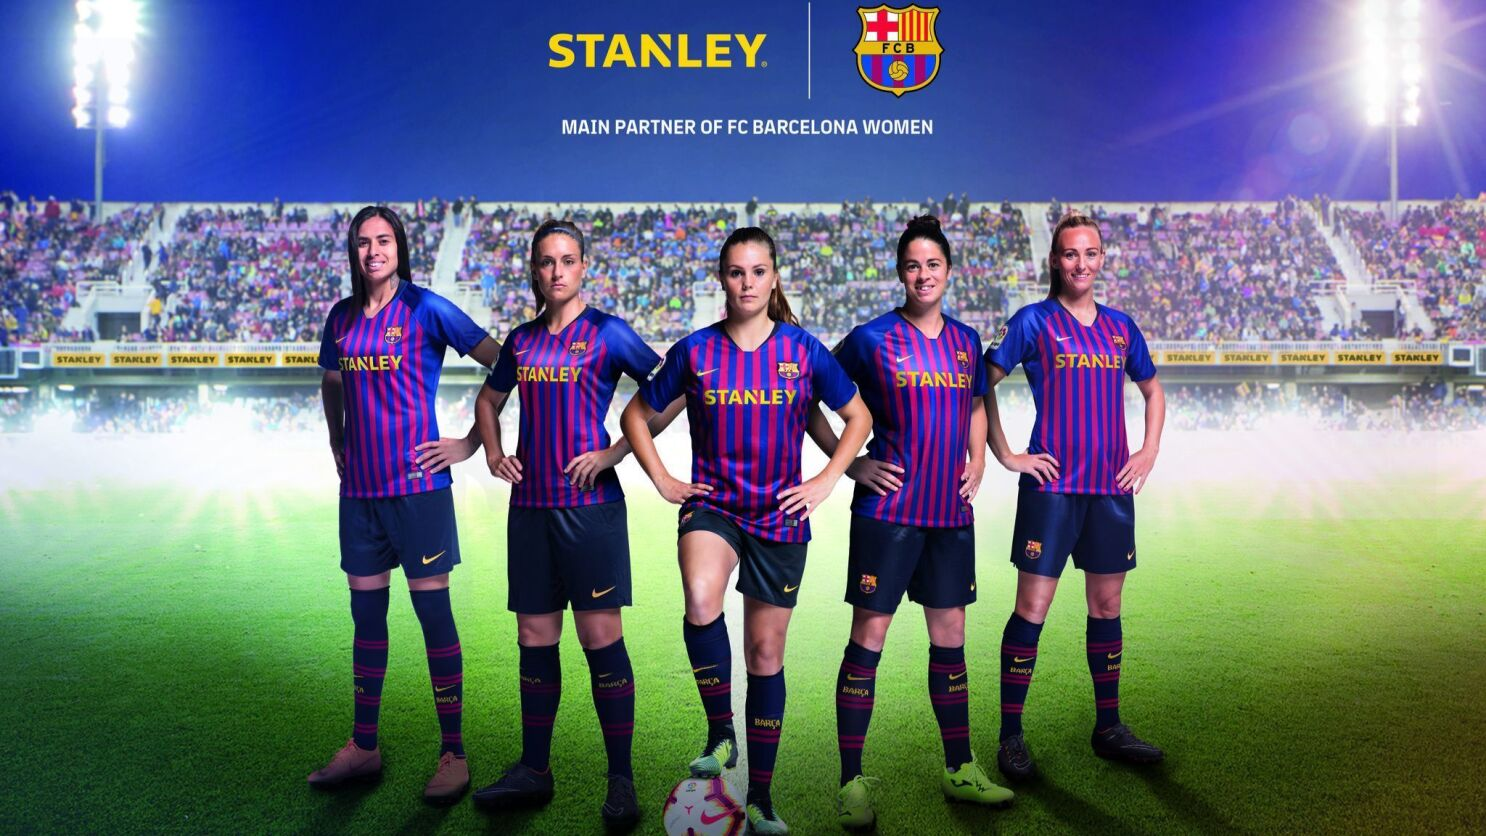 Barcelona Women S Soccer Team Is Sponsored By Stanley Black Decker Los Angeles Times